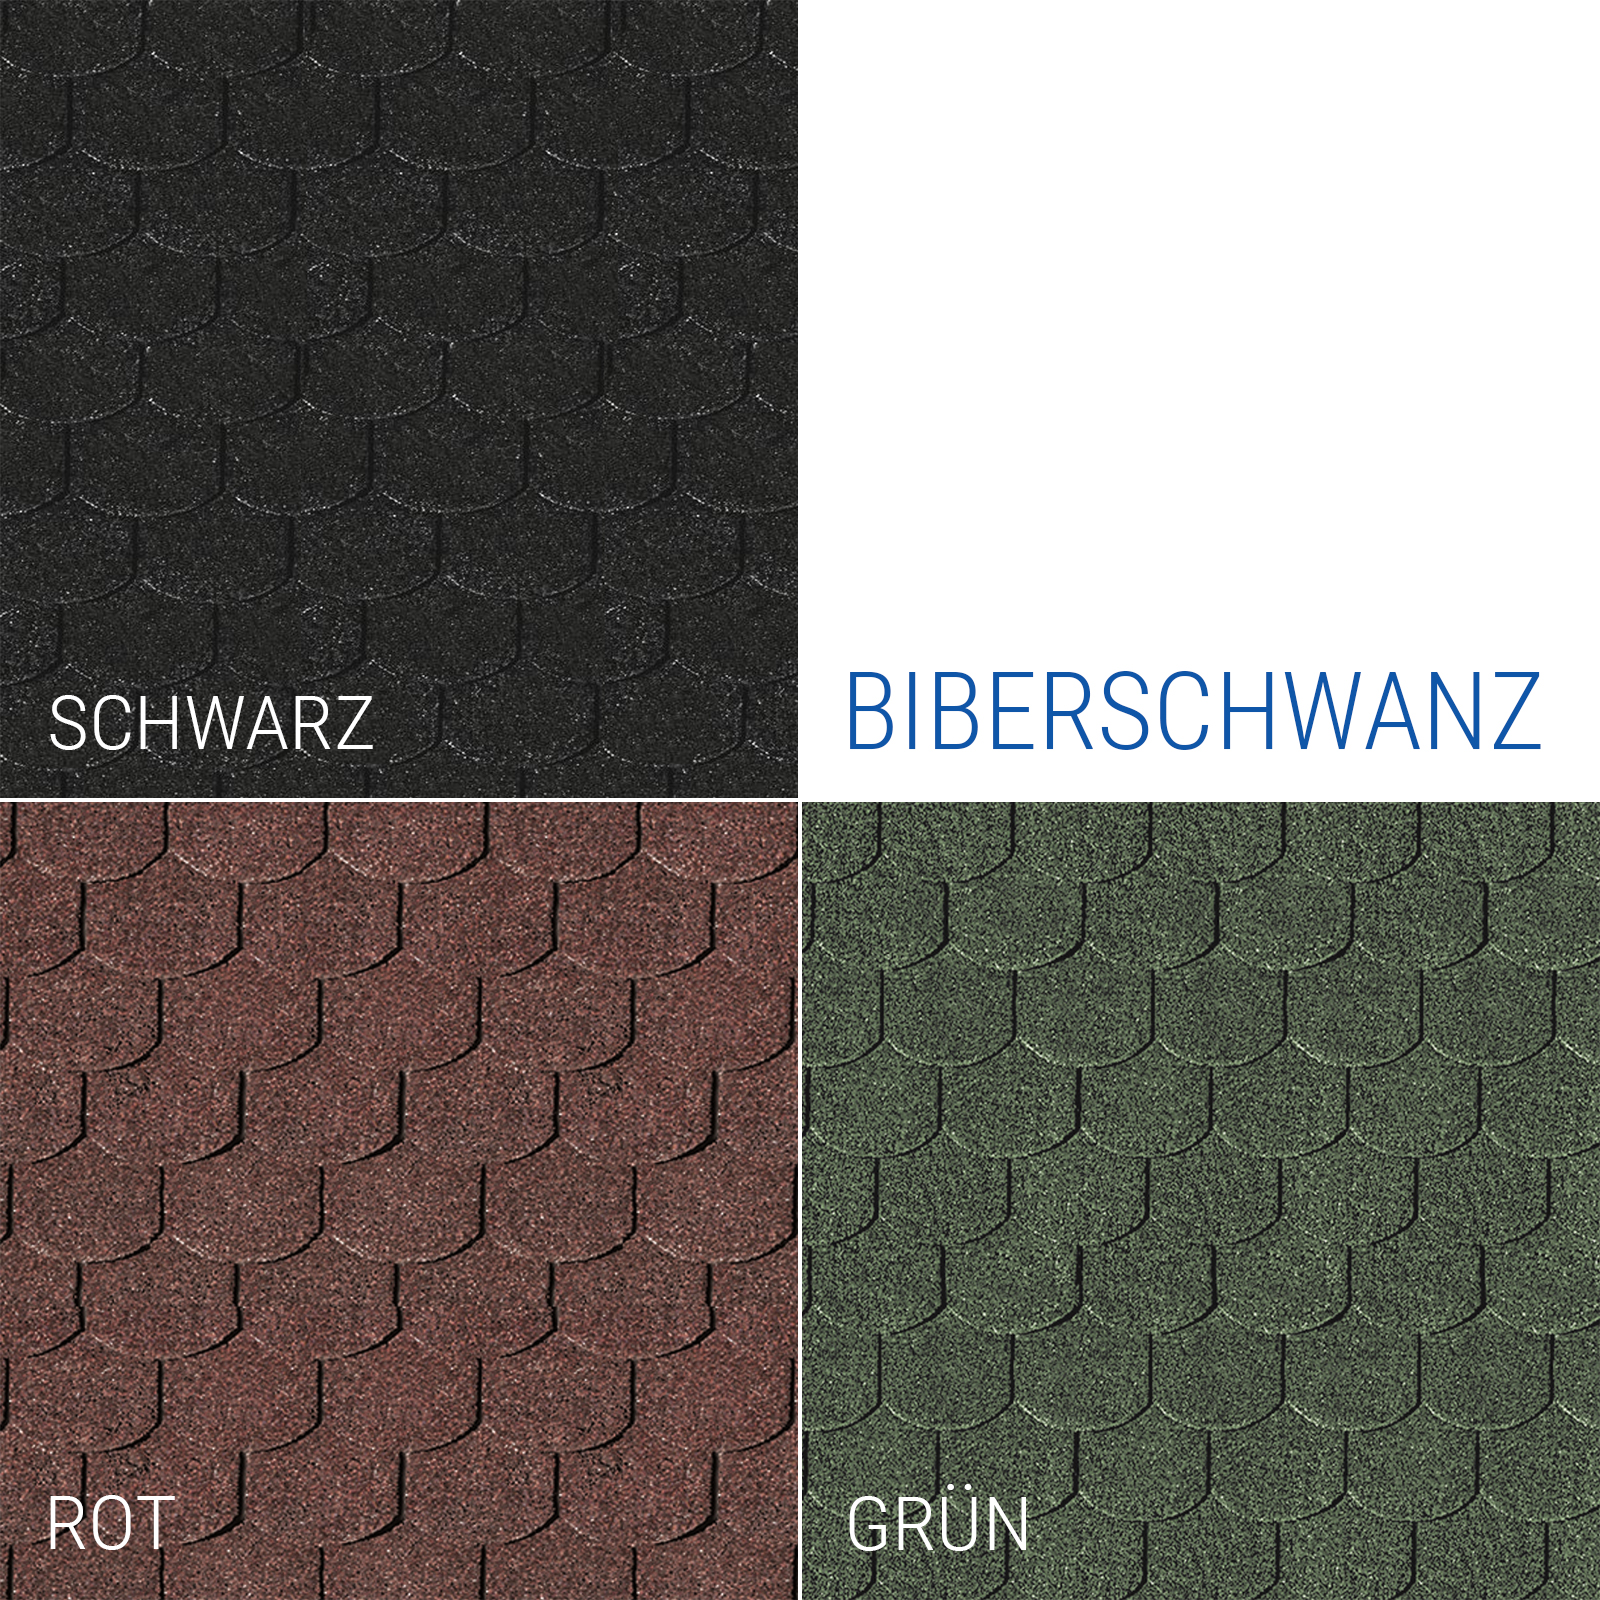 dachschindeln biberschwanz bitumen rot schwarz gr n rechteck gartenhaus 3 m ebay. Black Bedroom Furniture Sets. Home Design Ideas